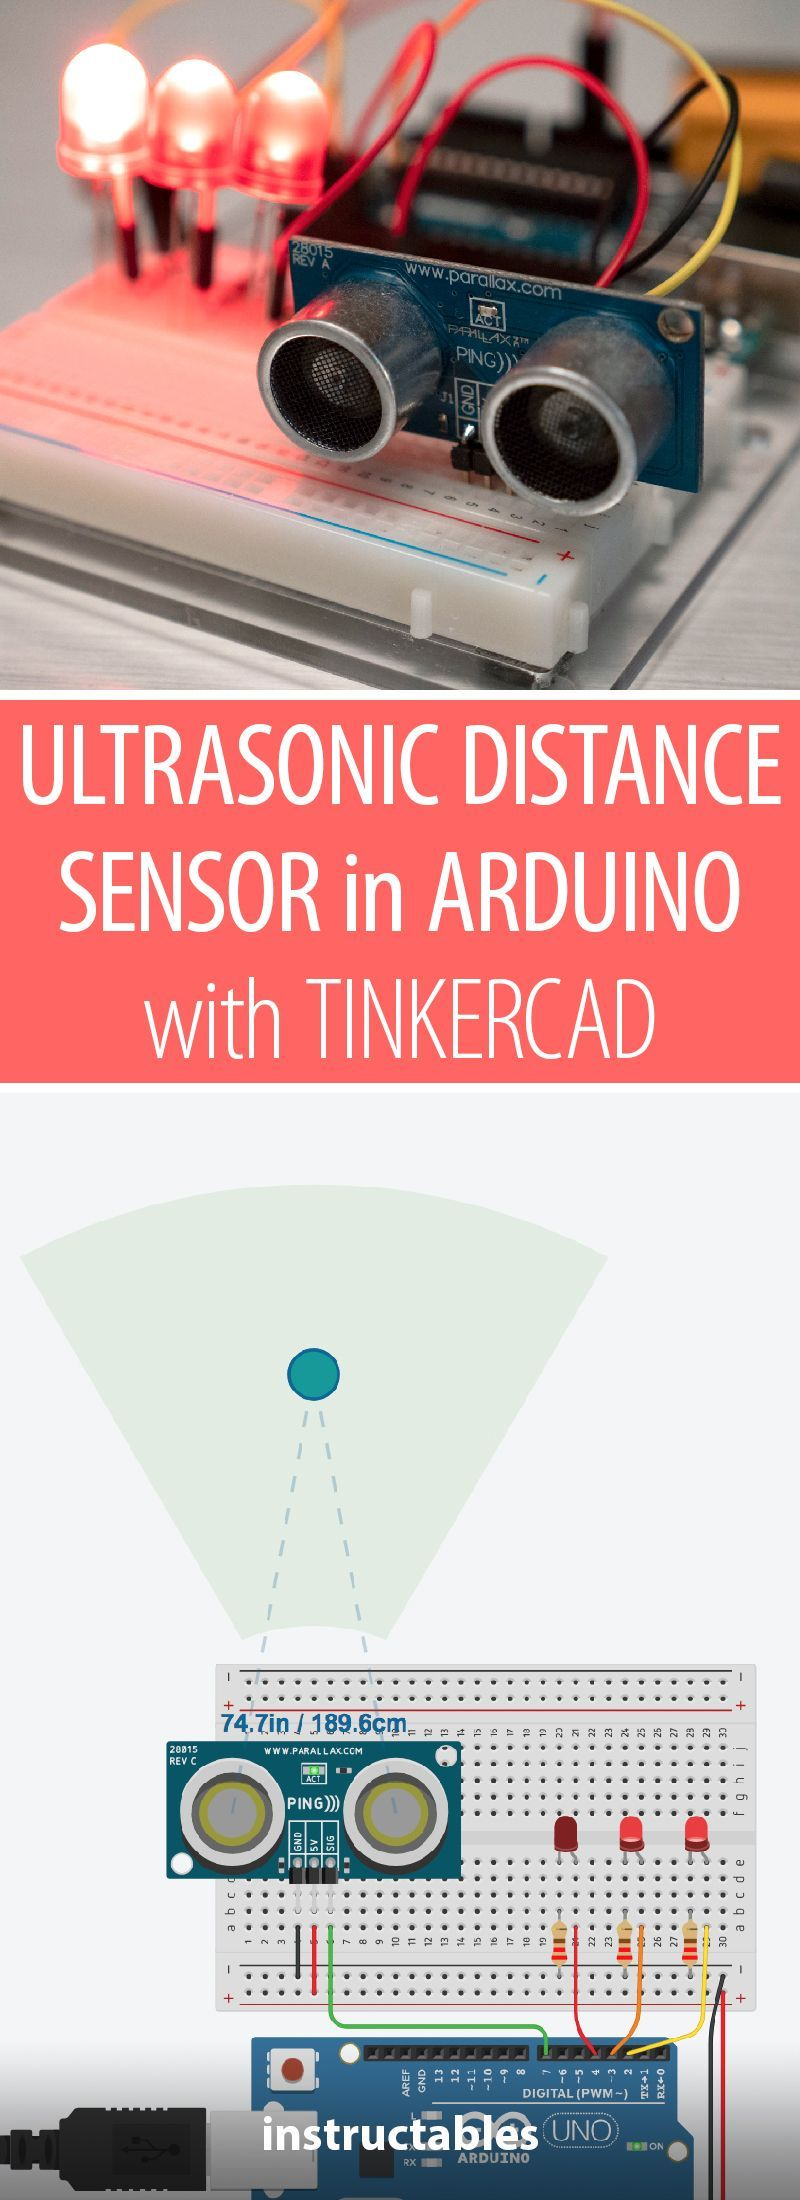 Ultrasonic Distance Sensor In Arduino With Tinkercad Proximity Circuit Measure Distances An Rangefinder And Arduinos Digital Input Connect Up A Using Breadboard Use Some Simple